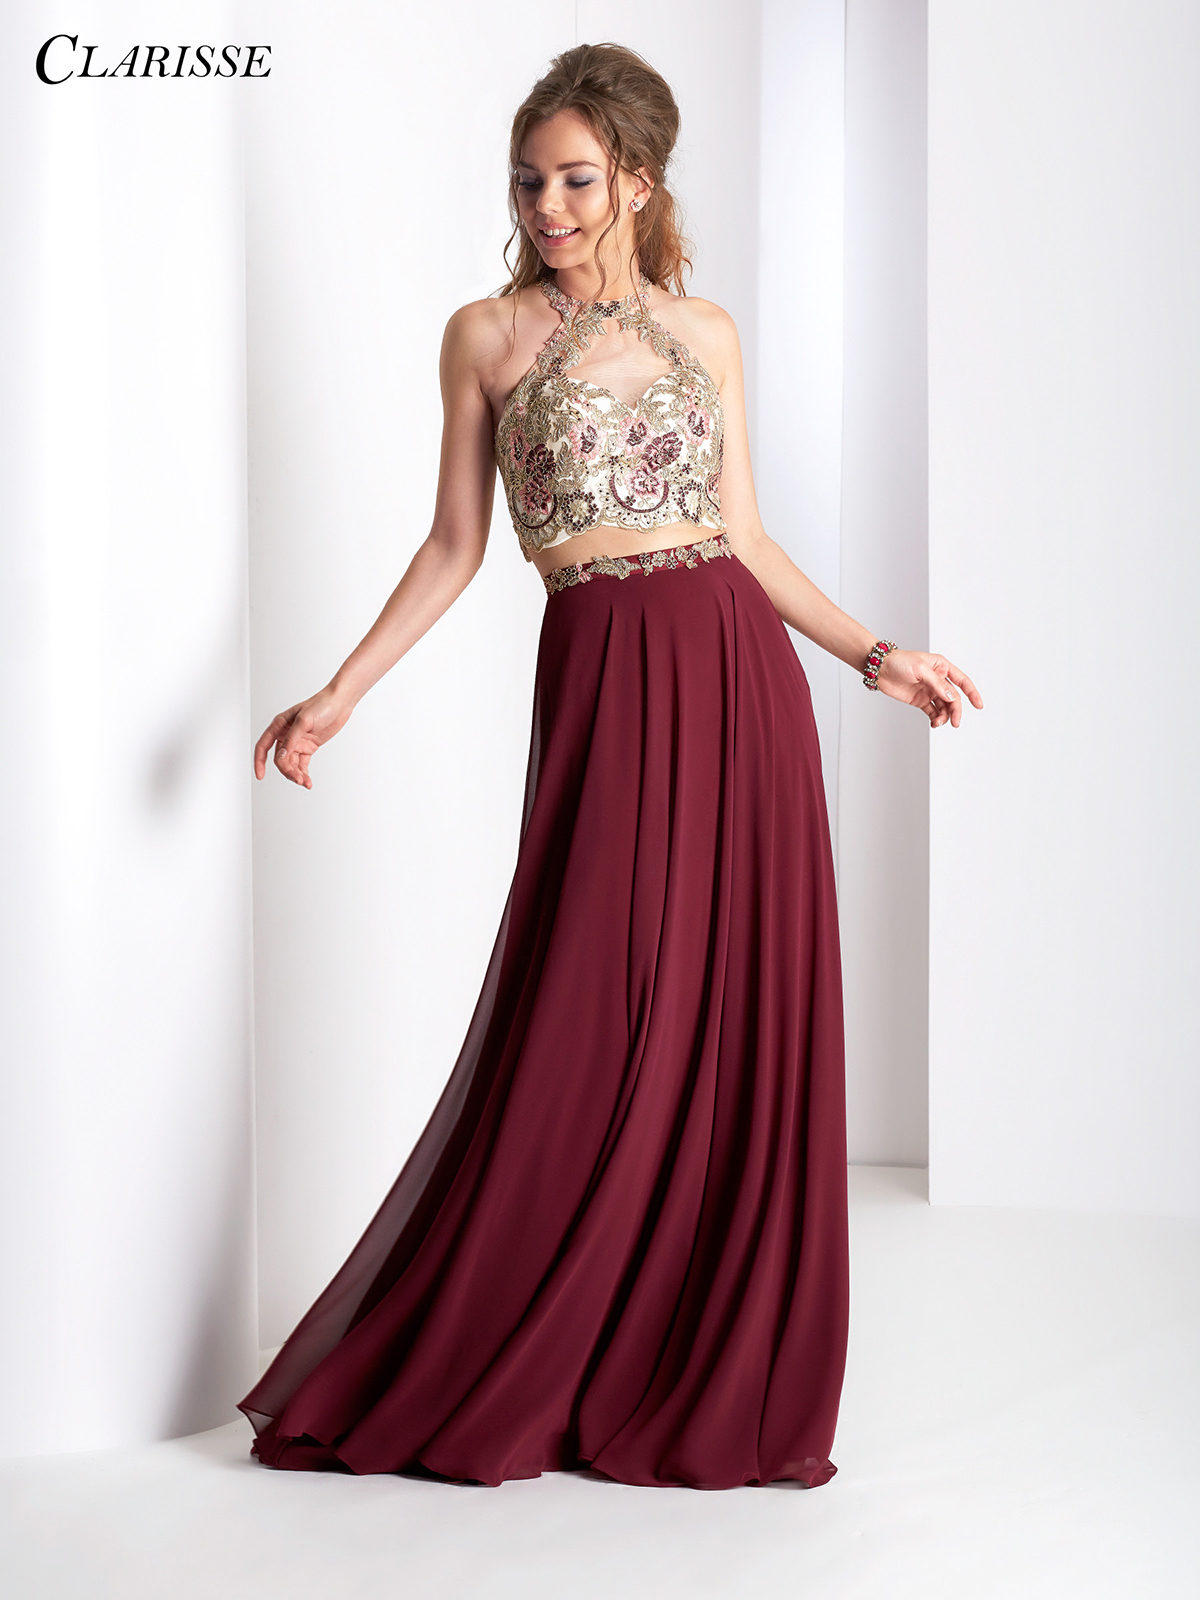 2018 Prom Dress Clarisse 3529 | Promgirl.net